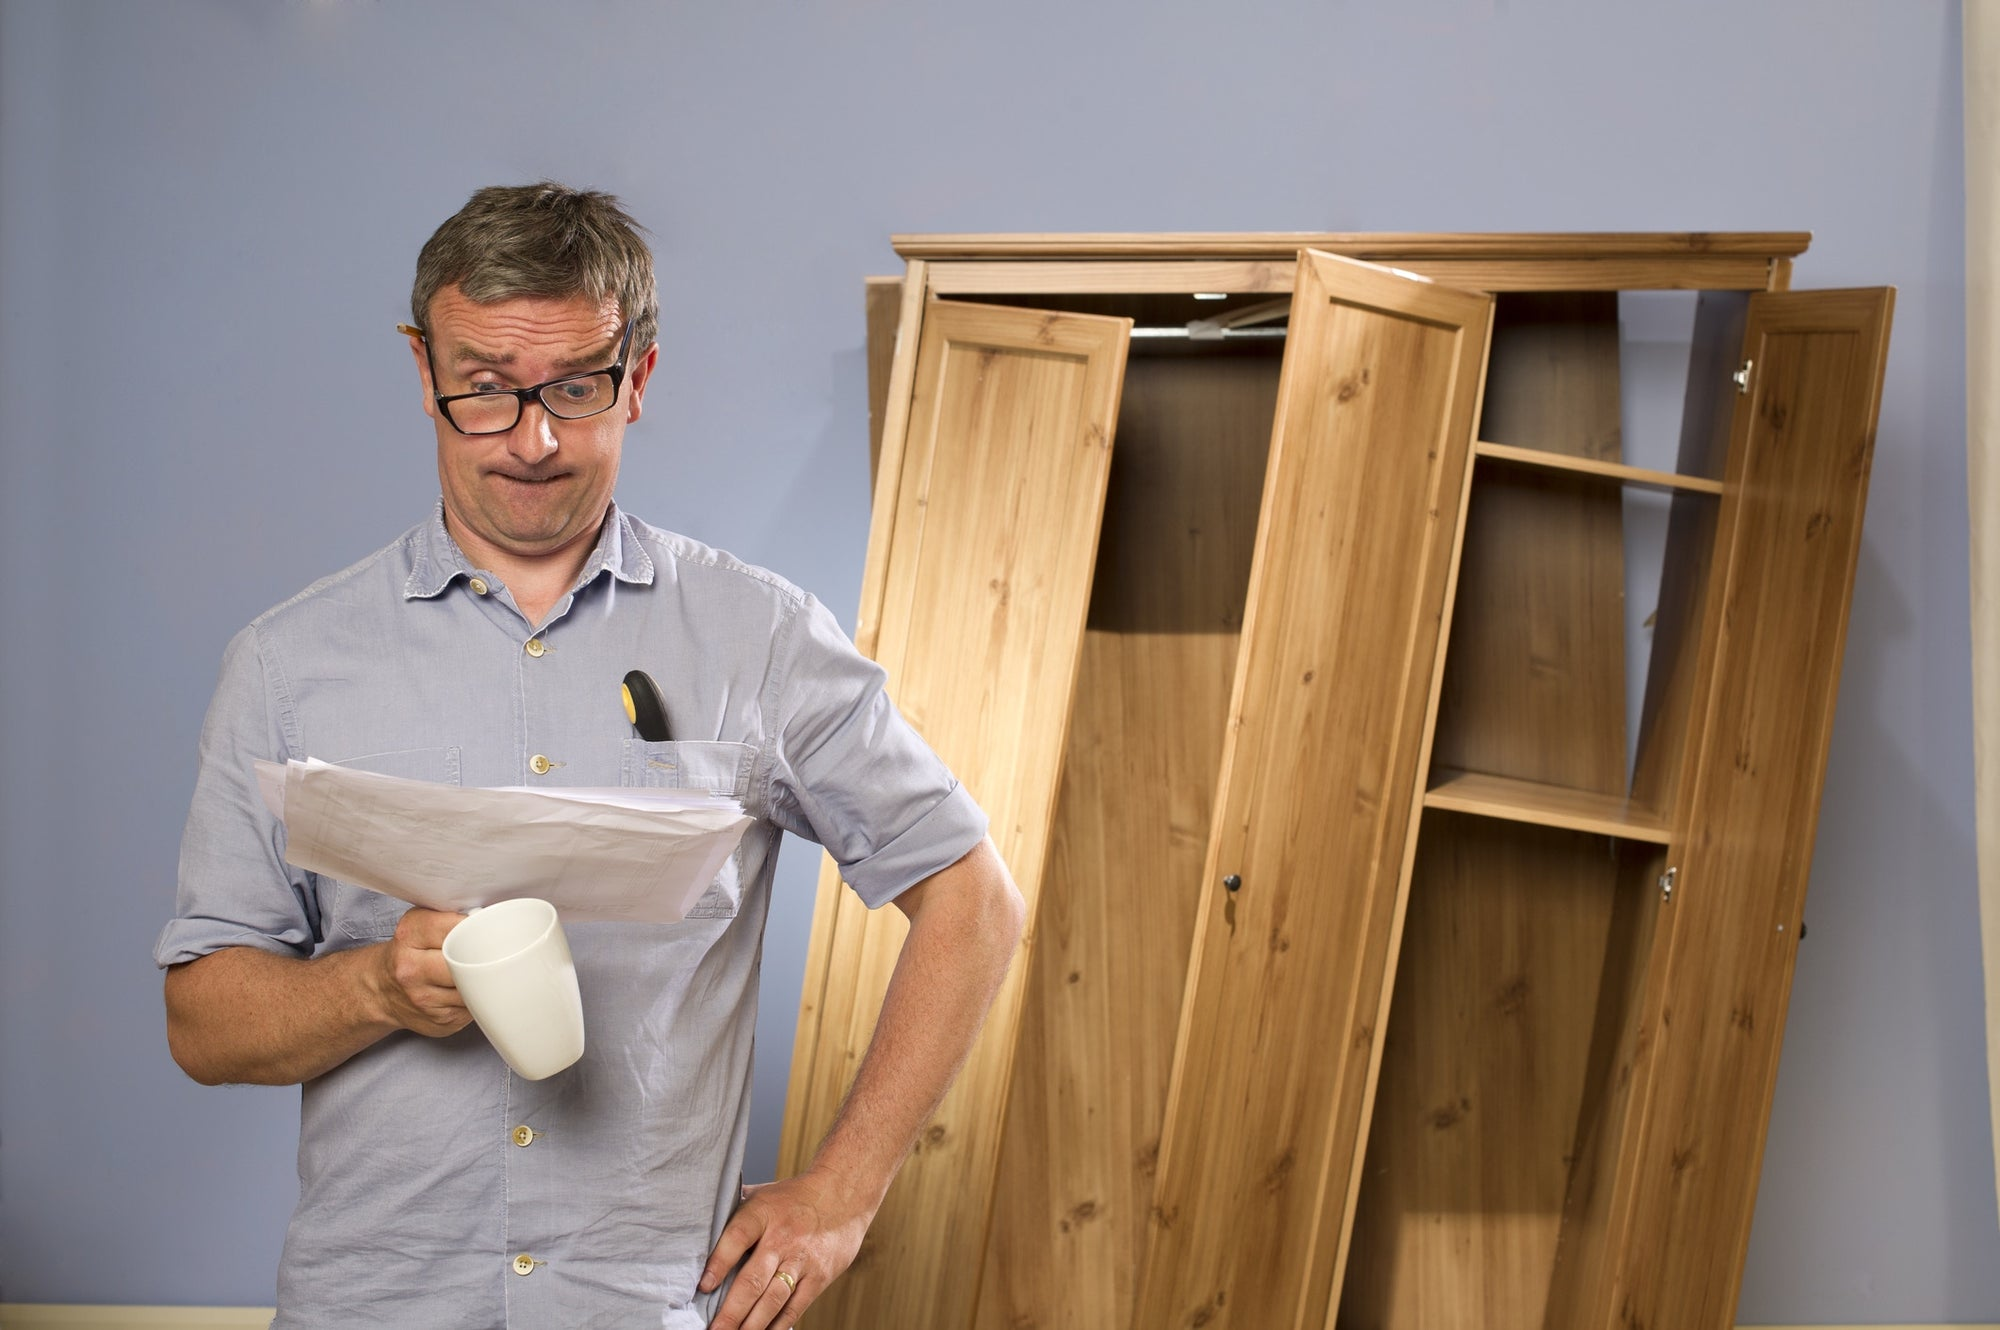 Man Confused Of Assembling Furniture Reading Manual